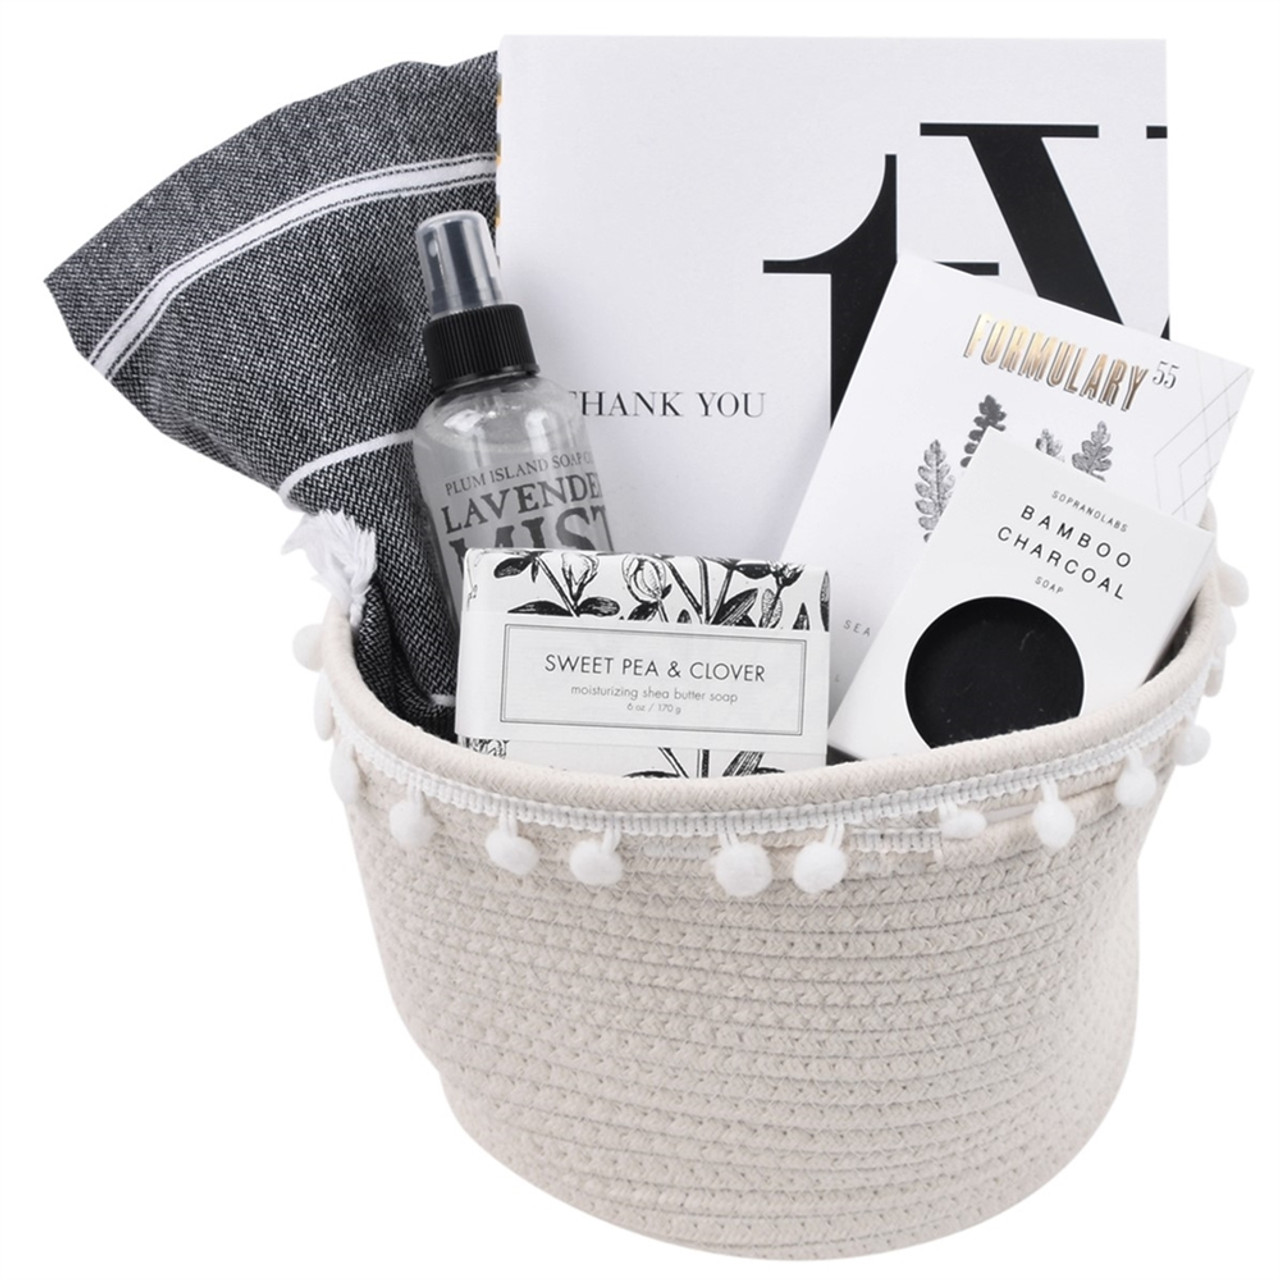 Thank You Gift Basket for Her - Thx